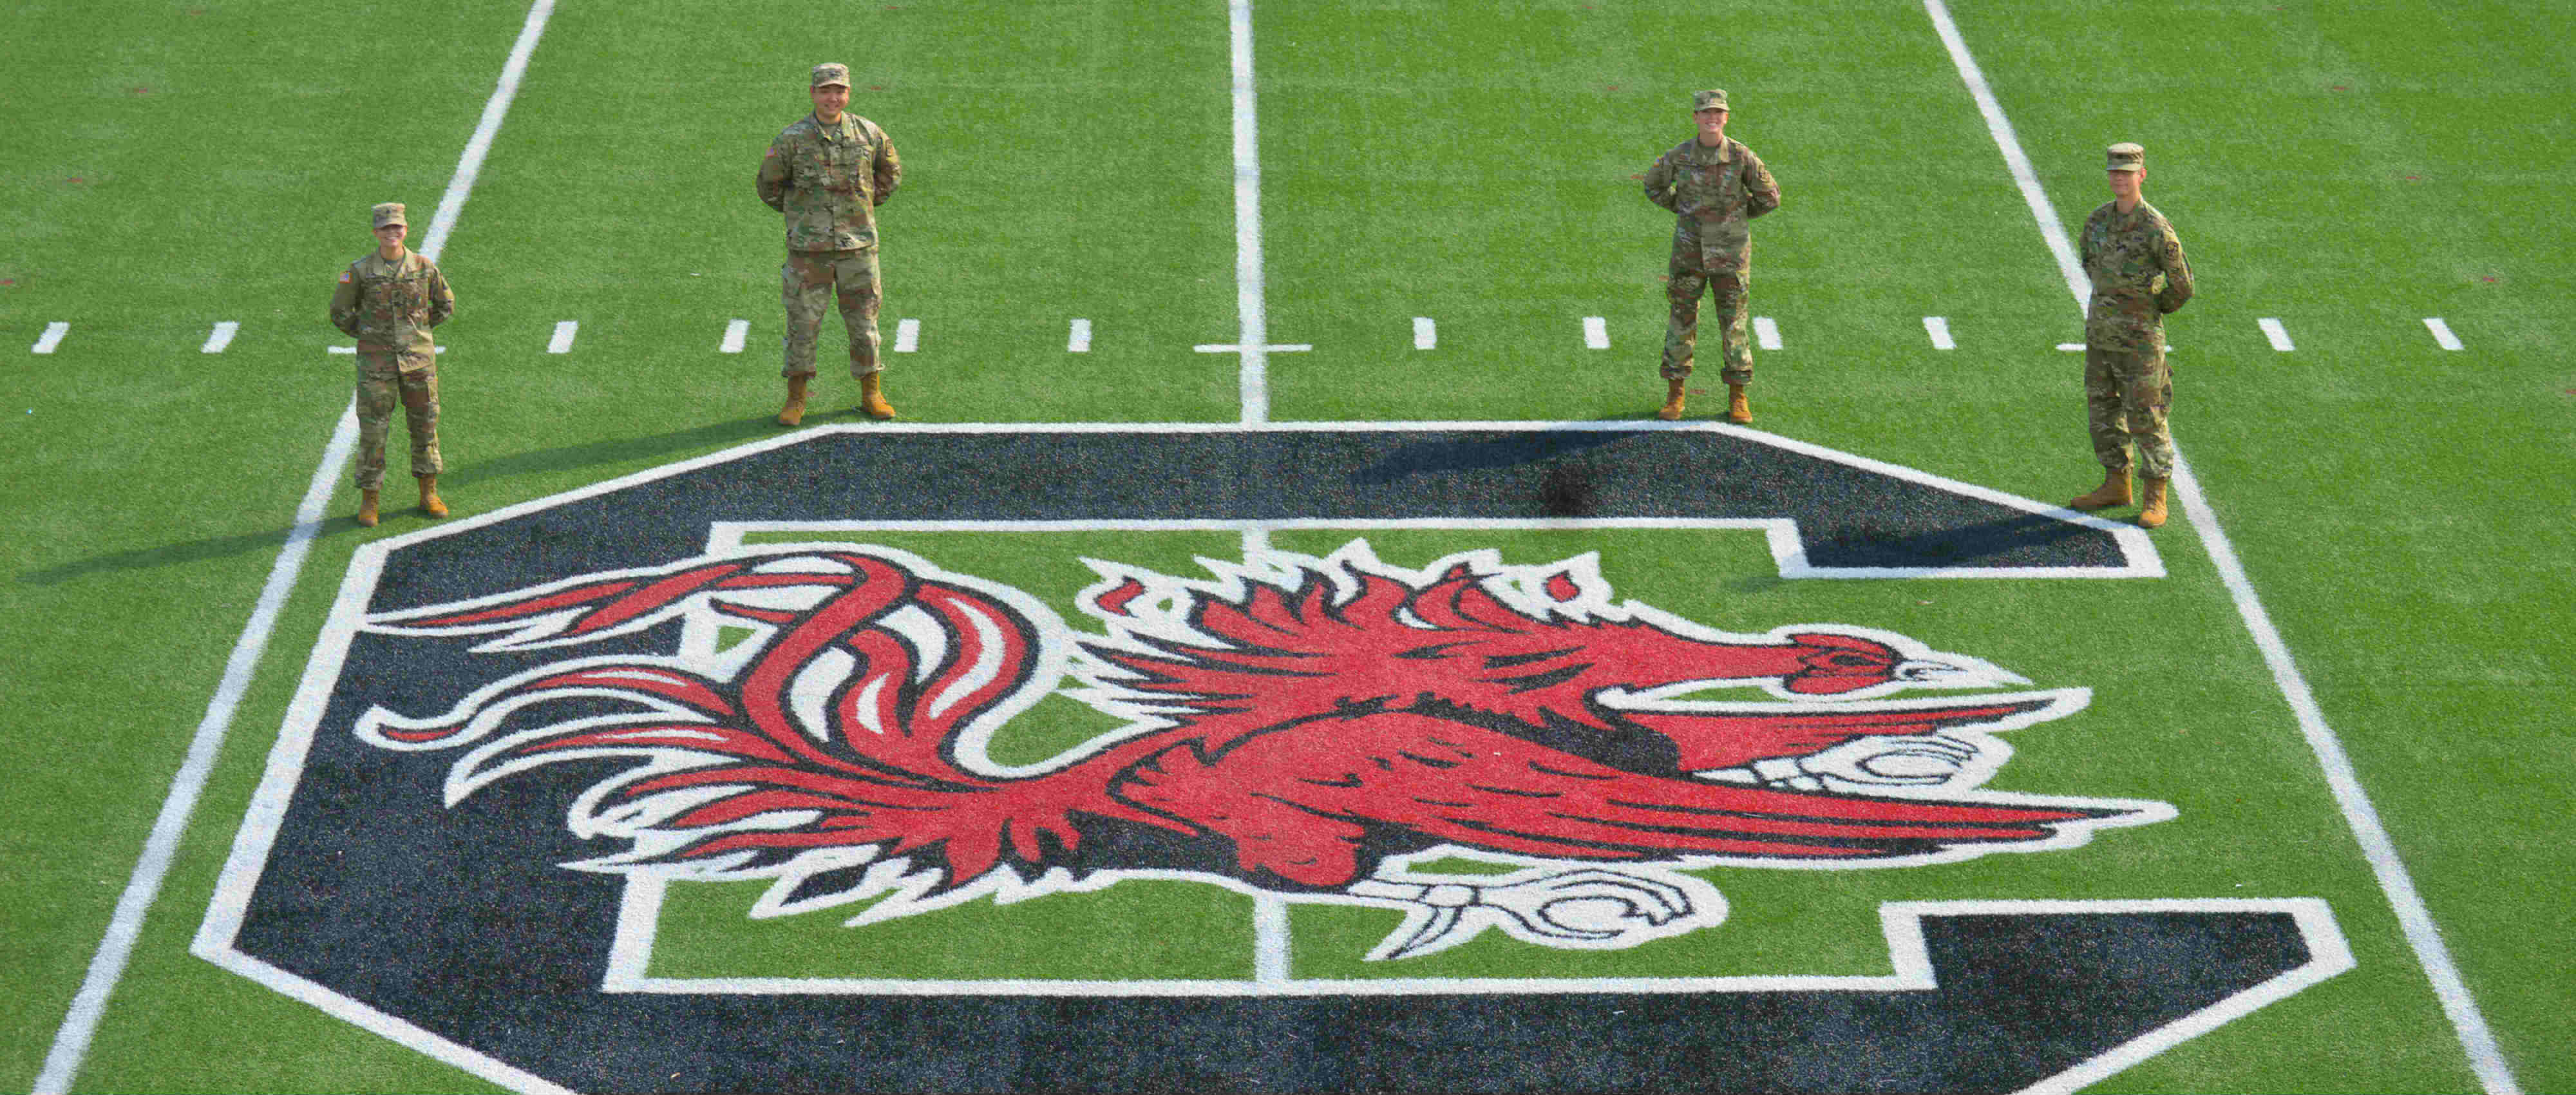 ROTC Cadets on a Football Field